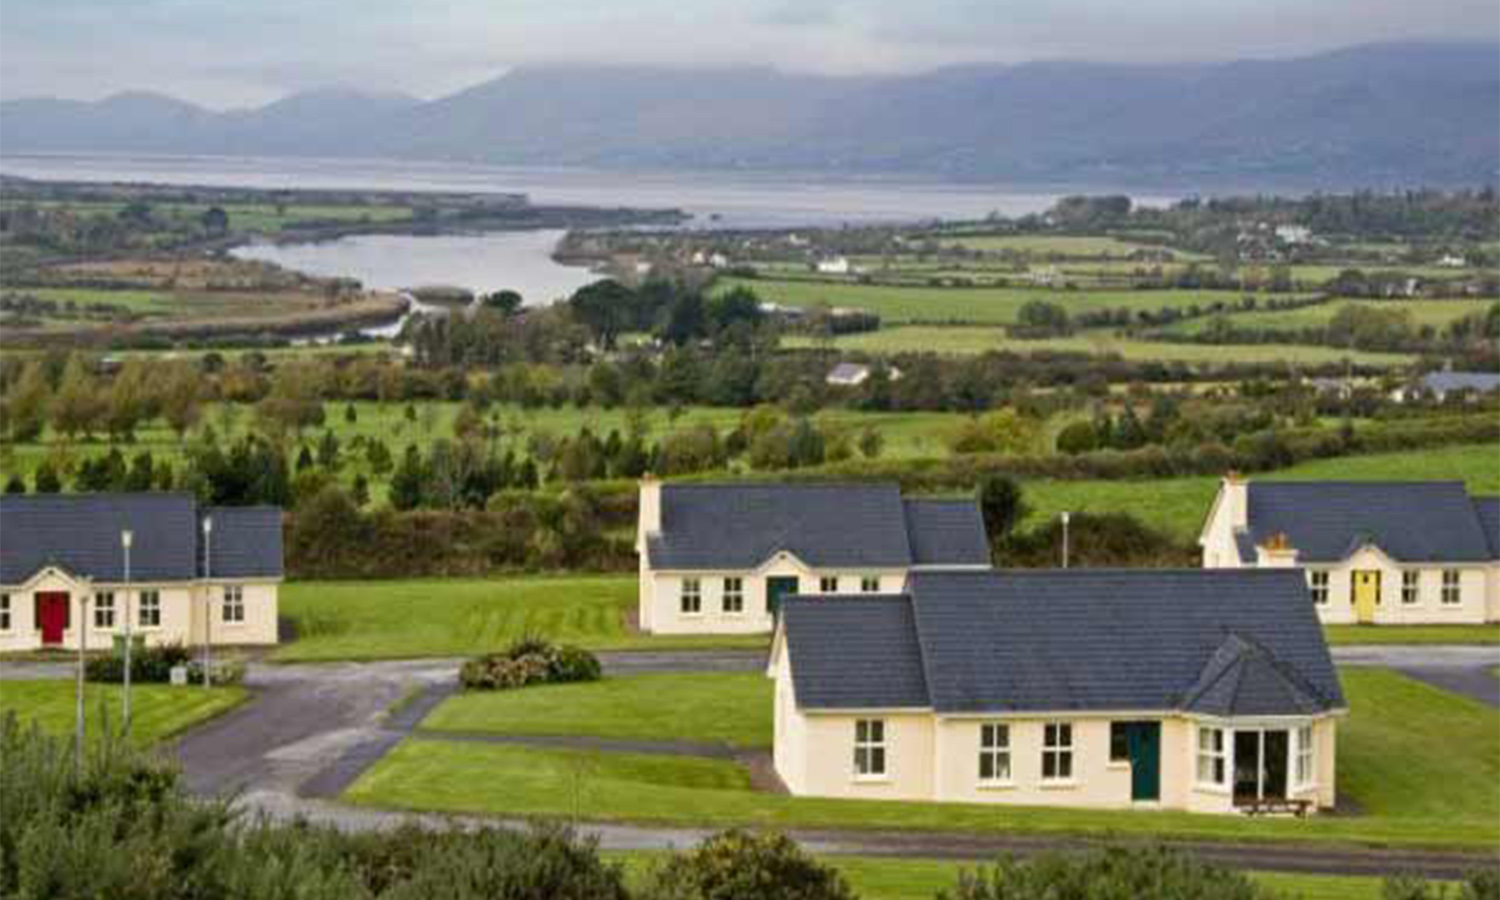 Ring of Kerry Holiday Village with view of hill